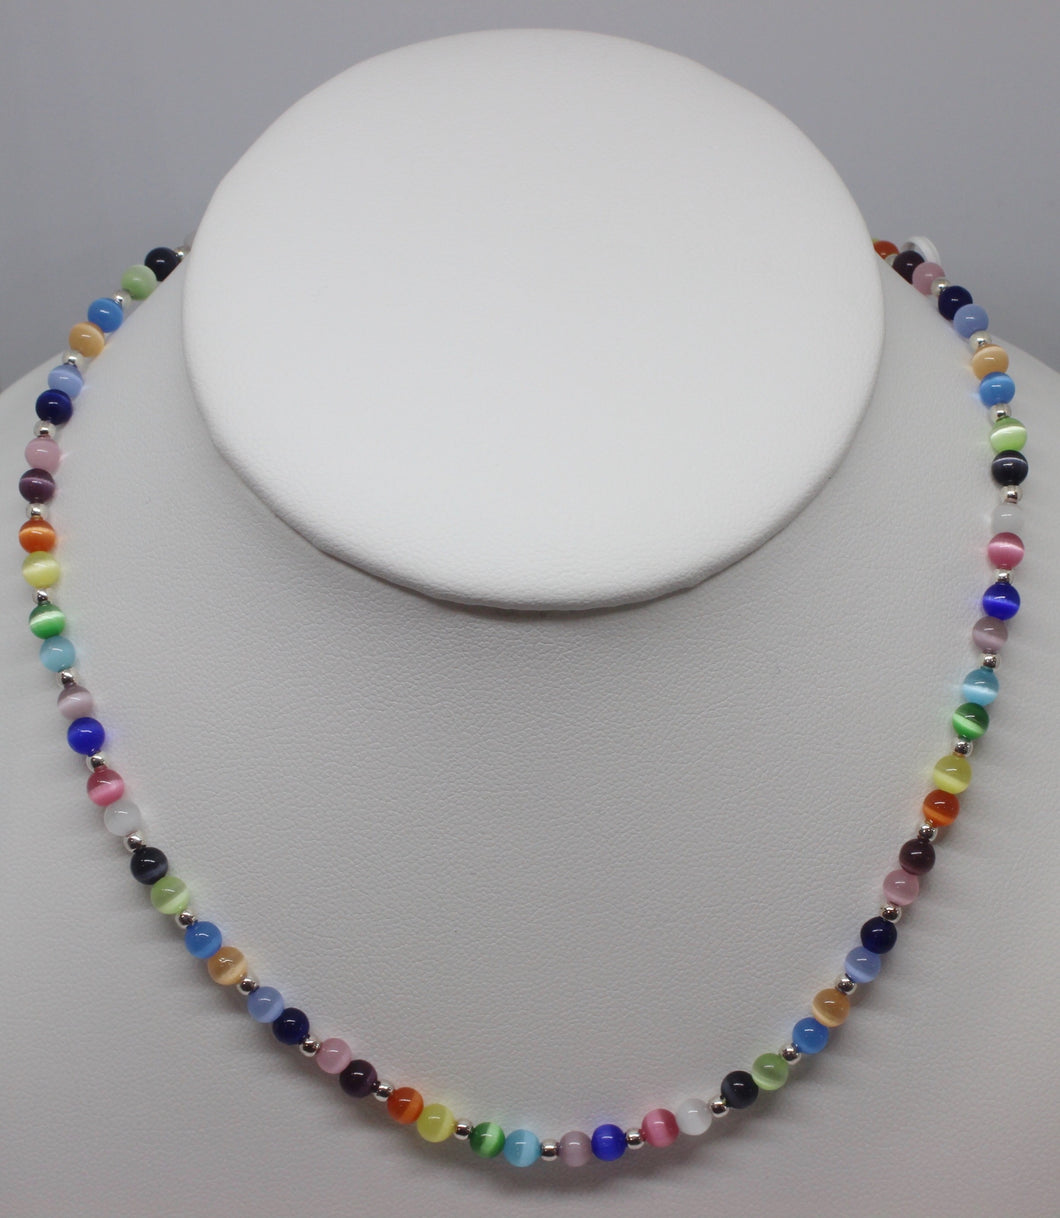 Multi Colored Fiber Optic Necklace - Lively Accents